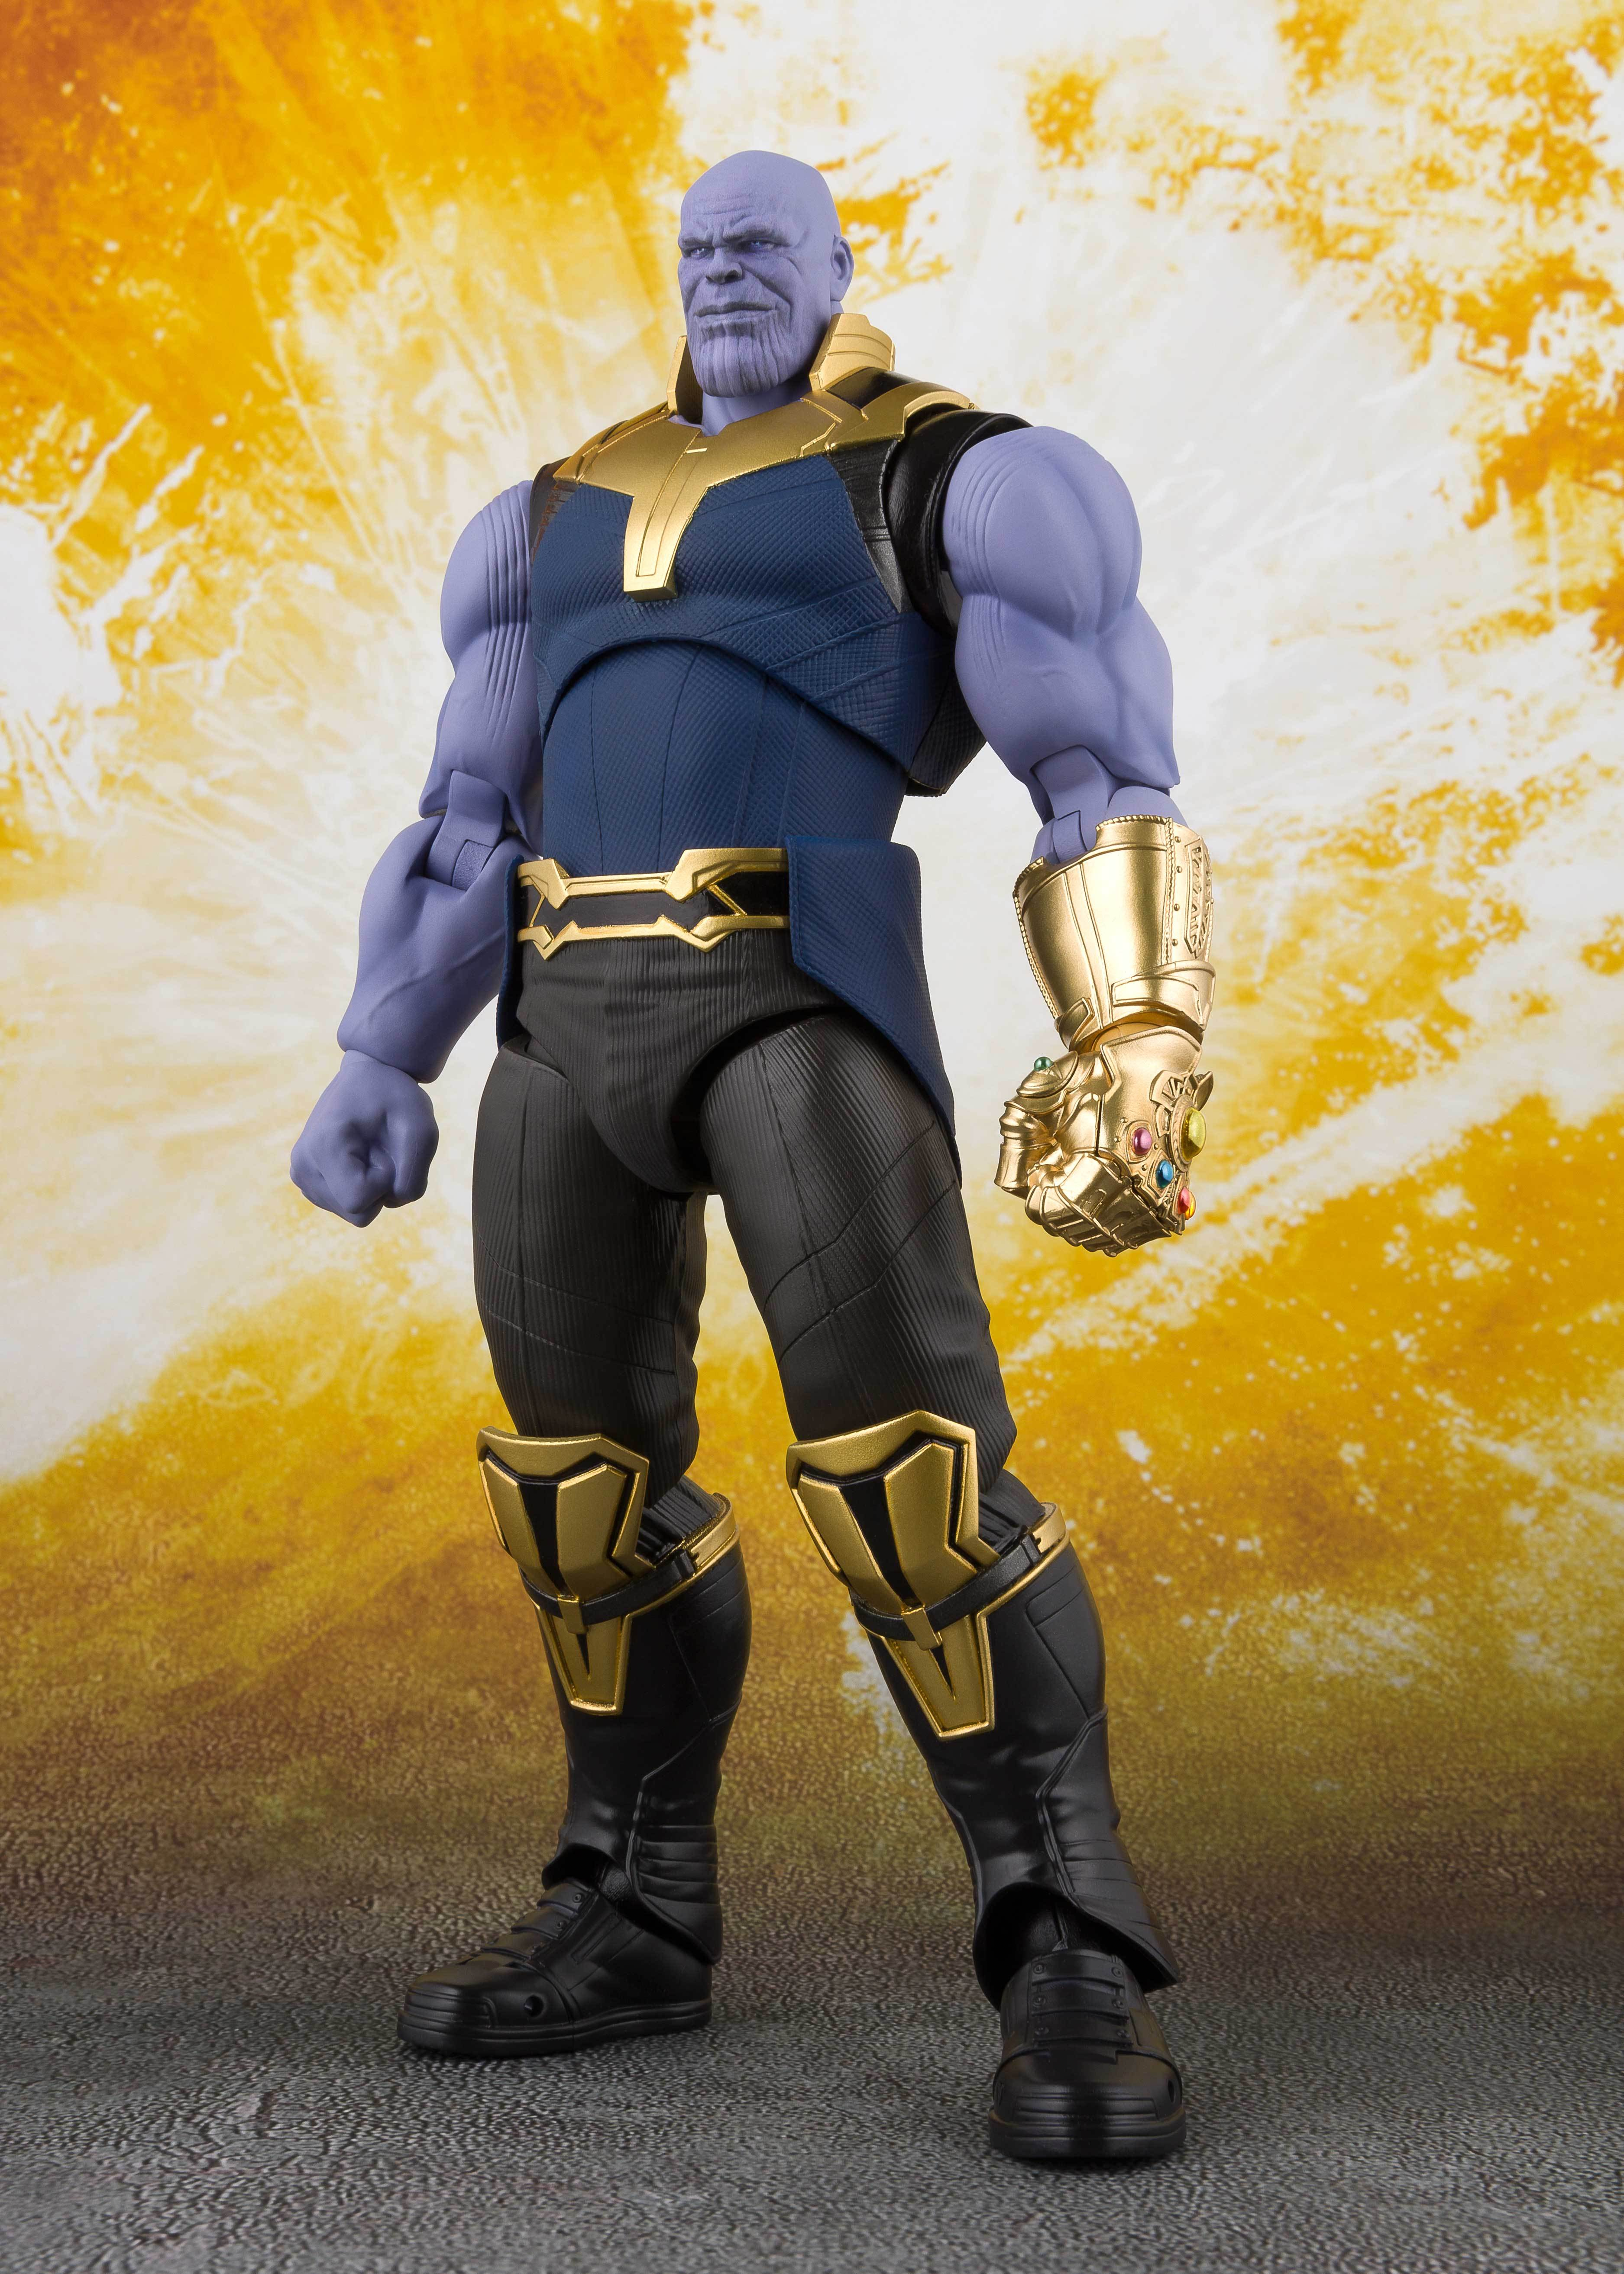 S.H. Figuarts Avengers Infinity War Thanos Action Figure by